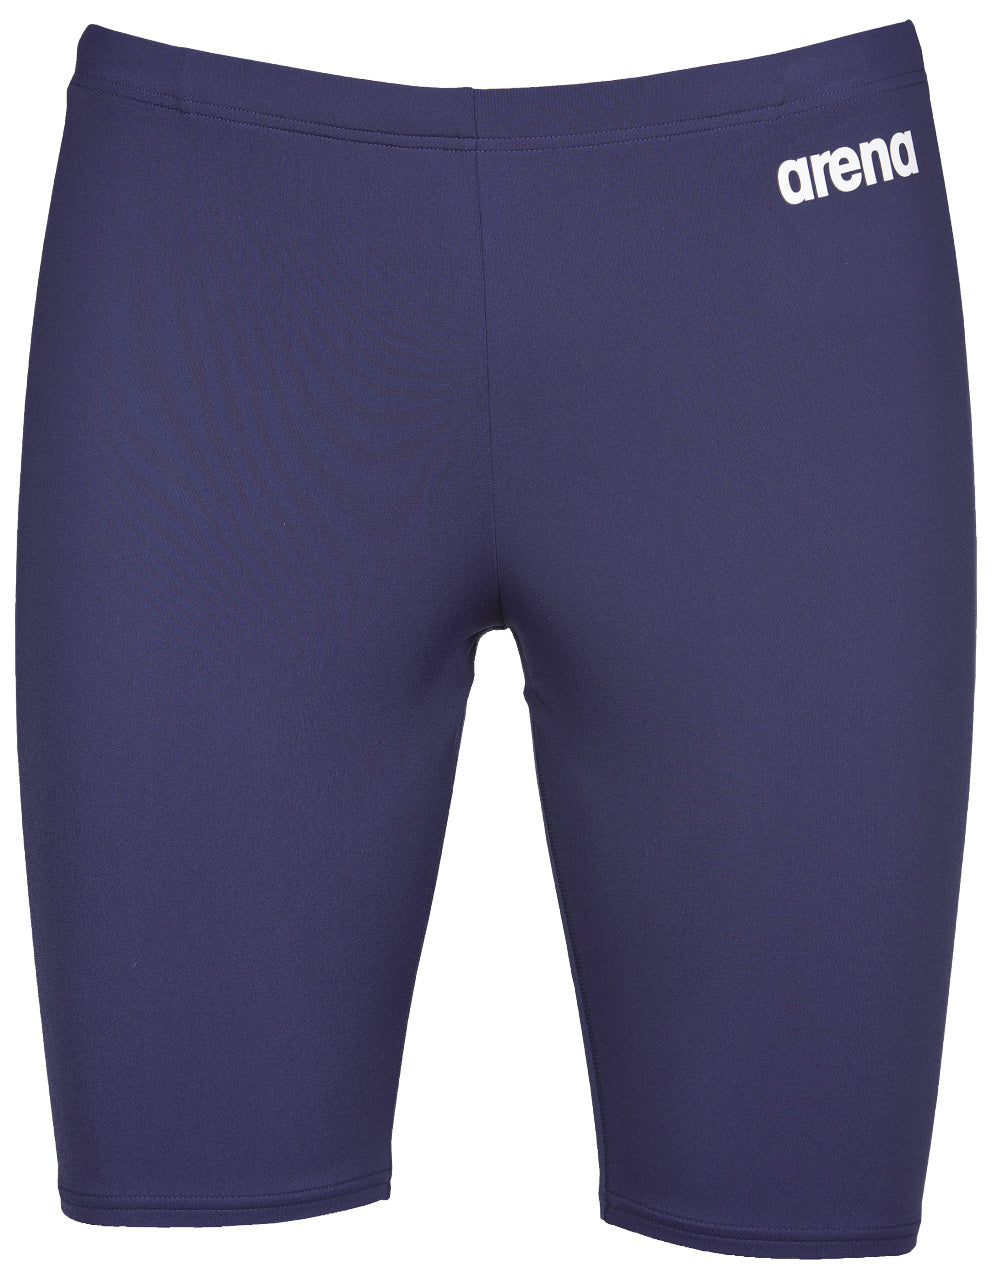 Arena Mens Solid Jammer Navy